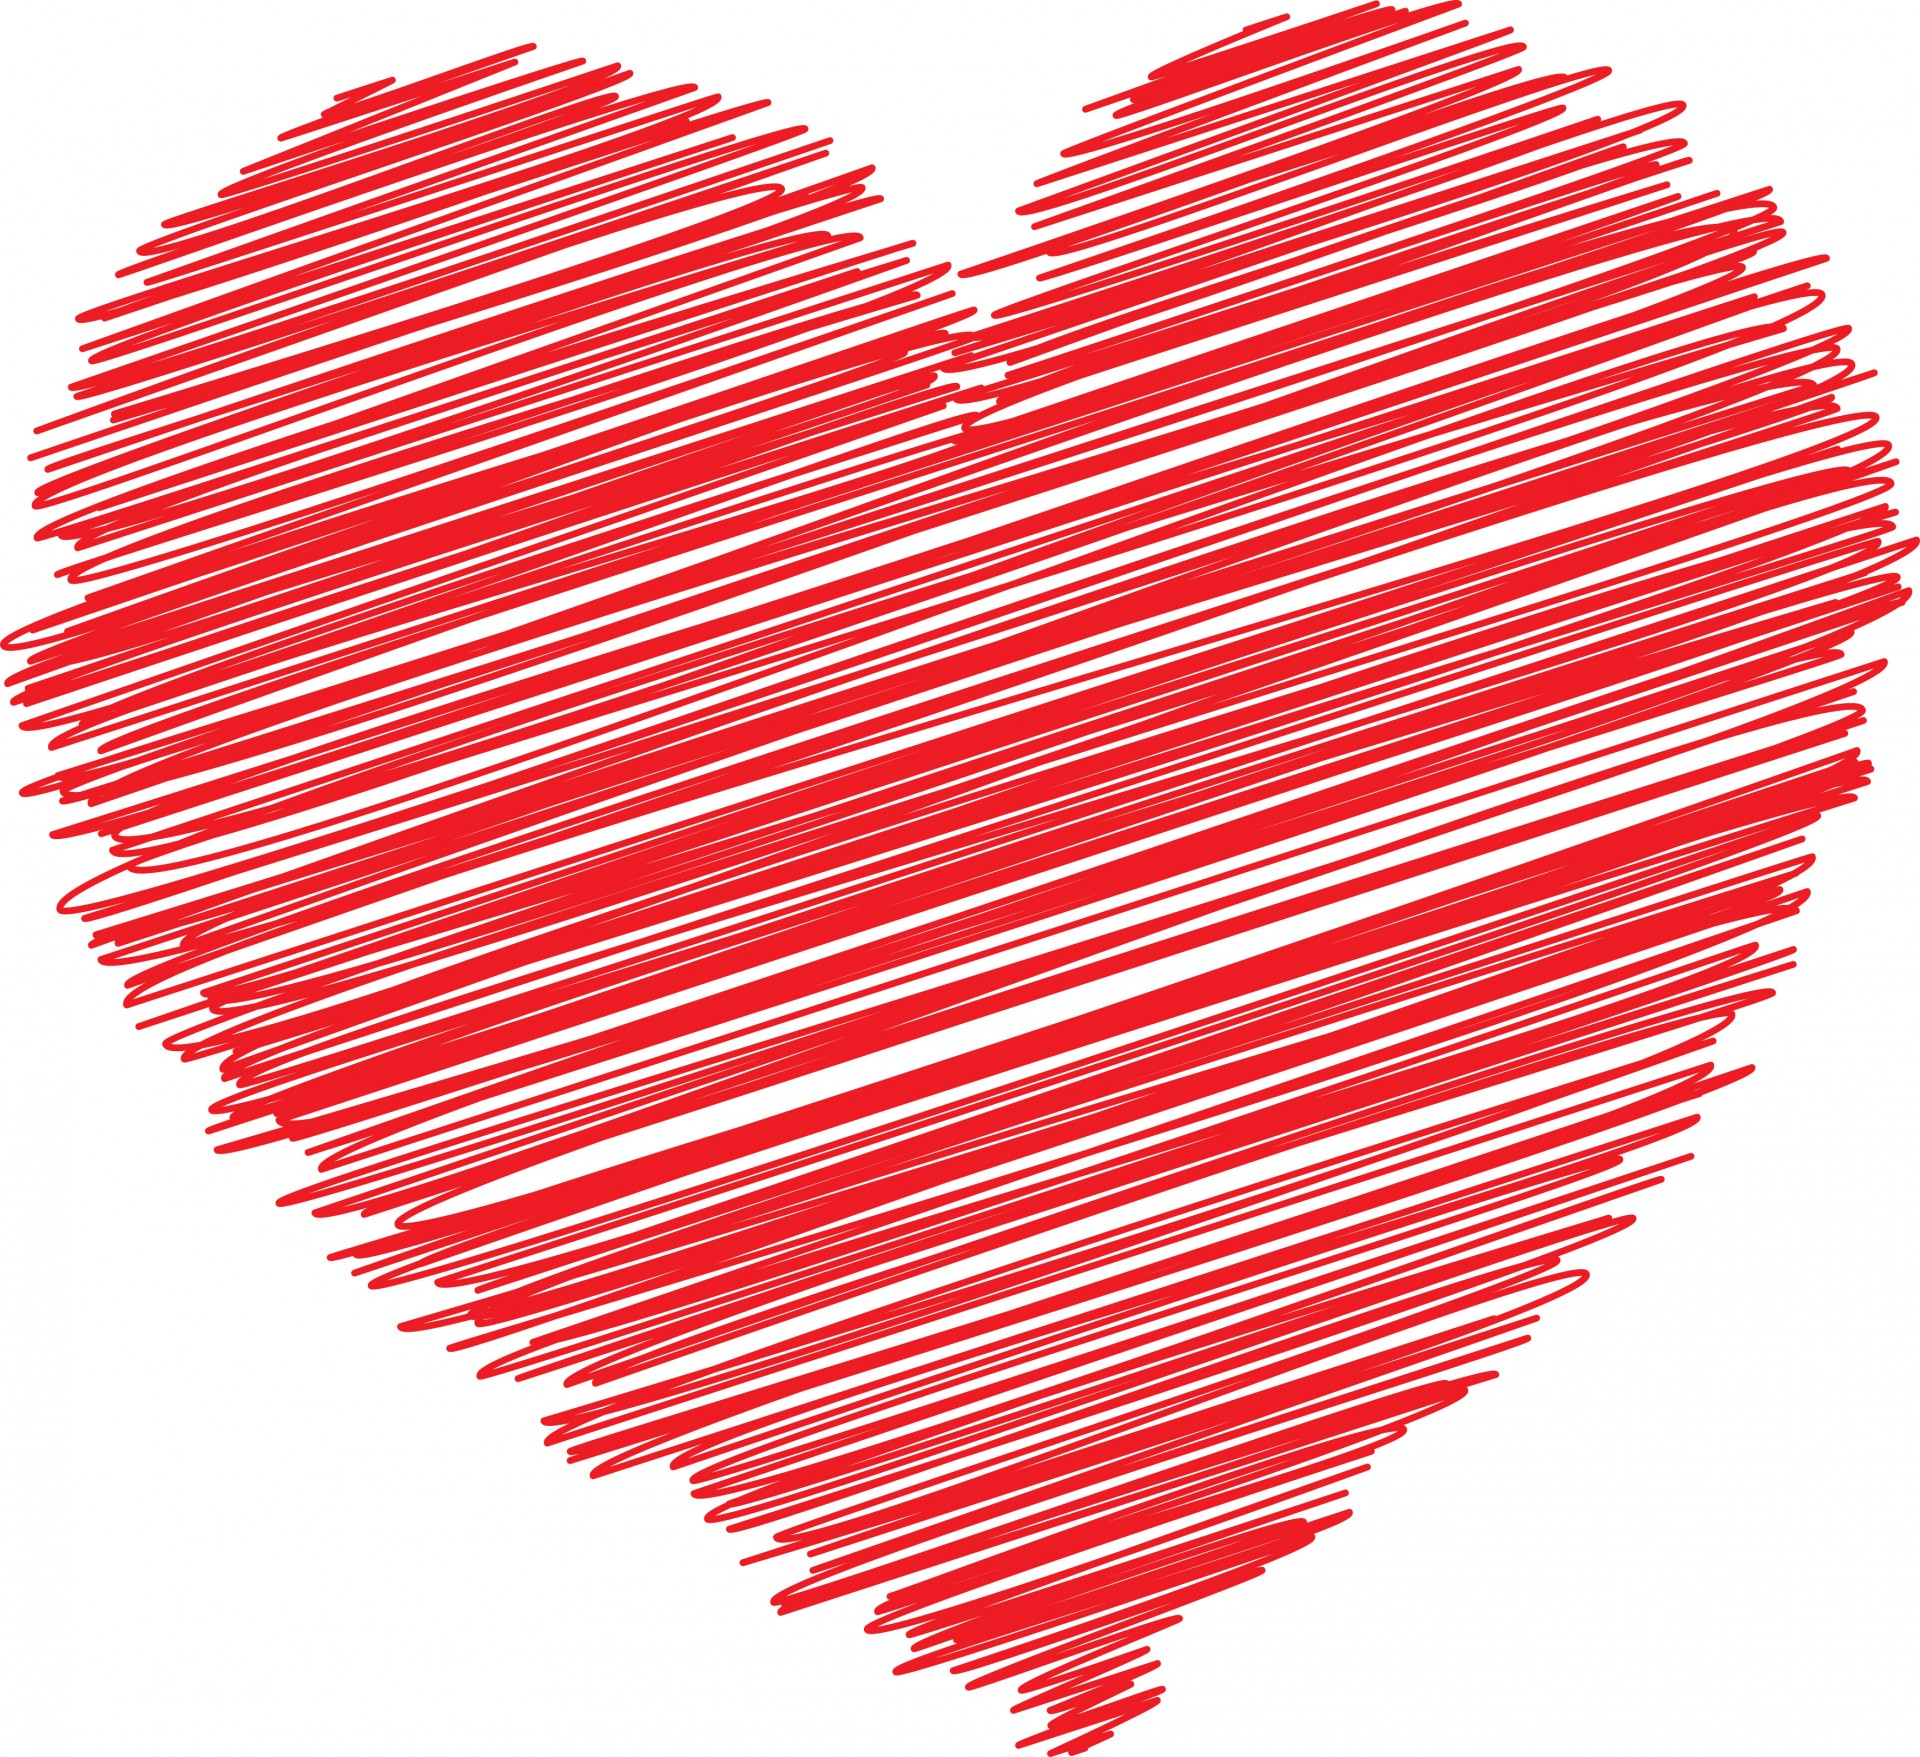 Red Scribble Heart Free Stock Photo - Public Domain Pictures